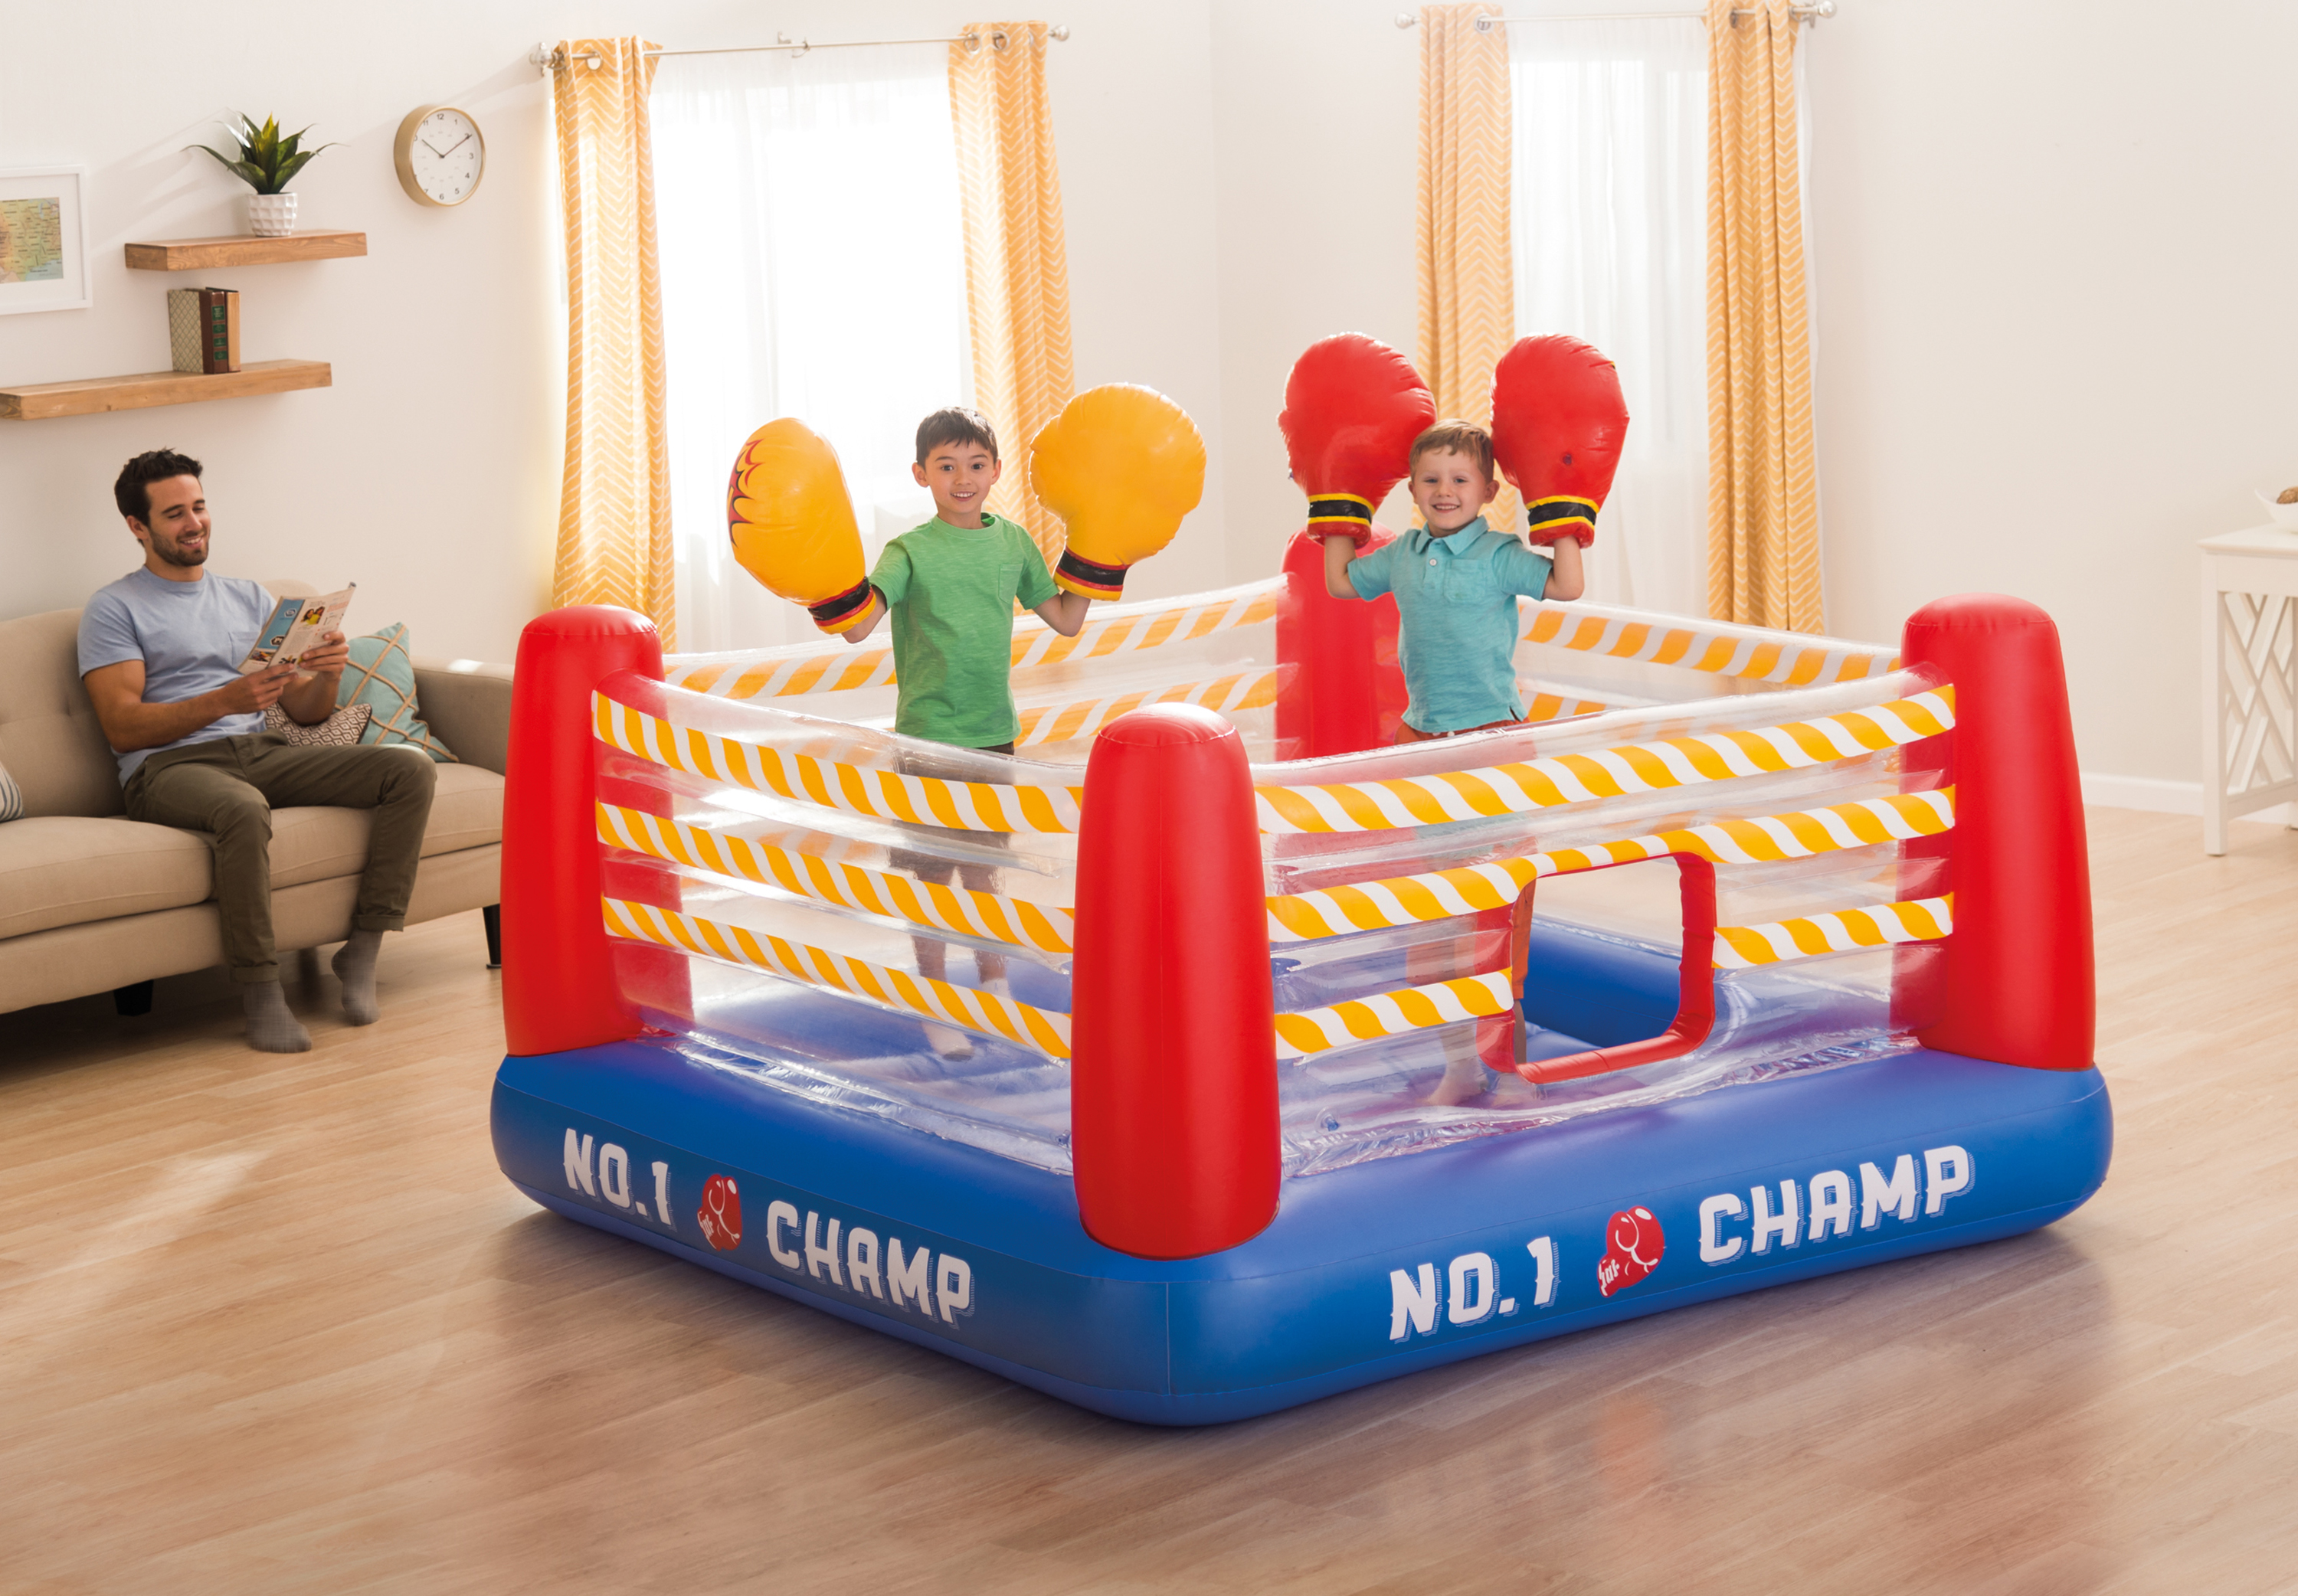 intex inflatable chairs card table and set sam s club jump-o-lene boxing ring bouncer playhouse toy 48250ep | ebay